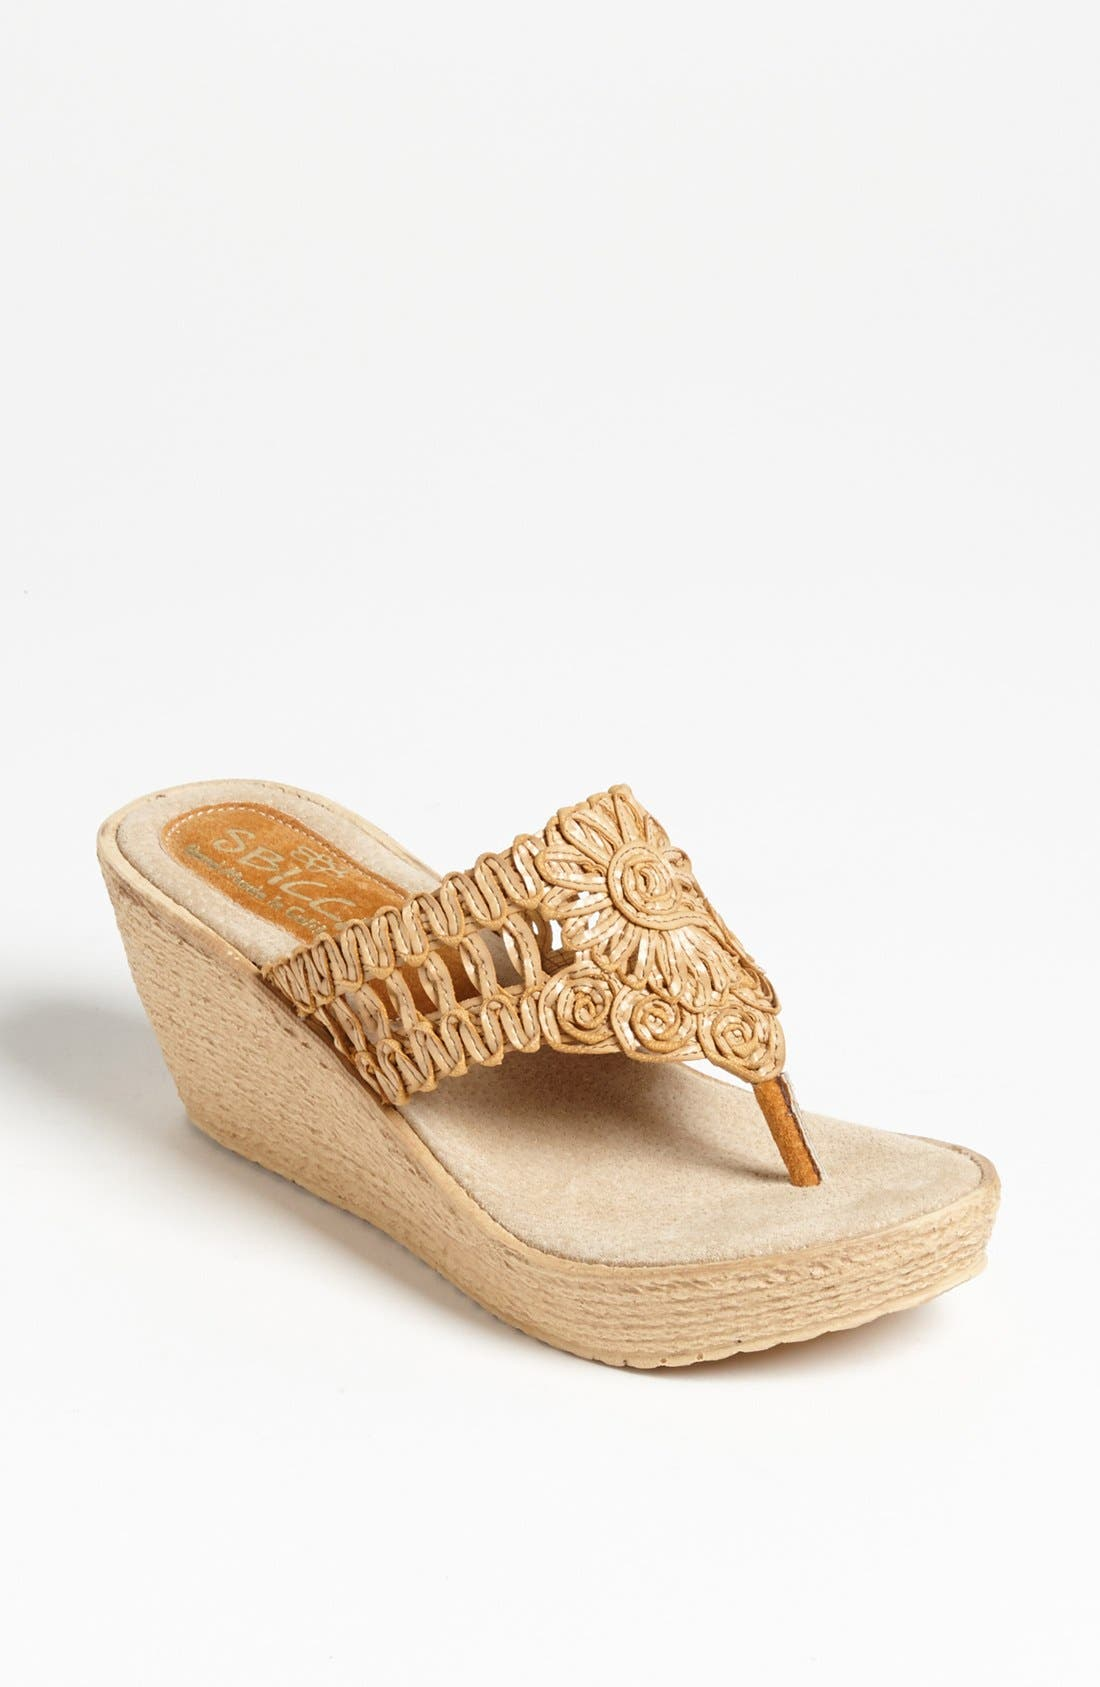 Alternate Image 1 Selected - Sbicca 'Kalani' Flip Flop Wedge Sandal